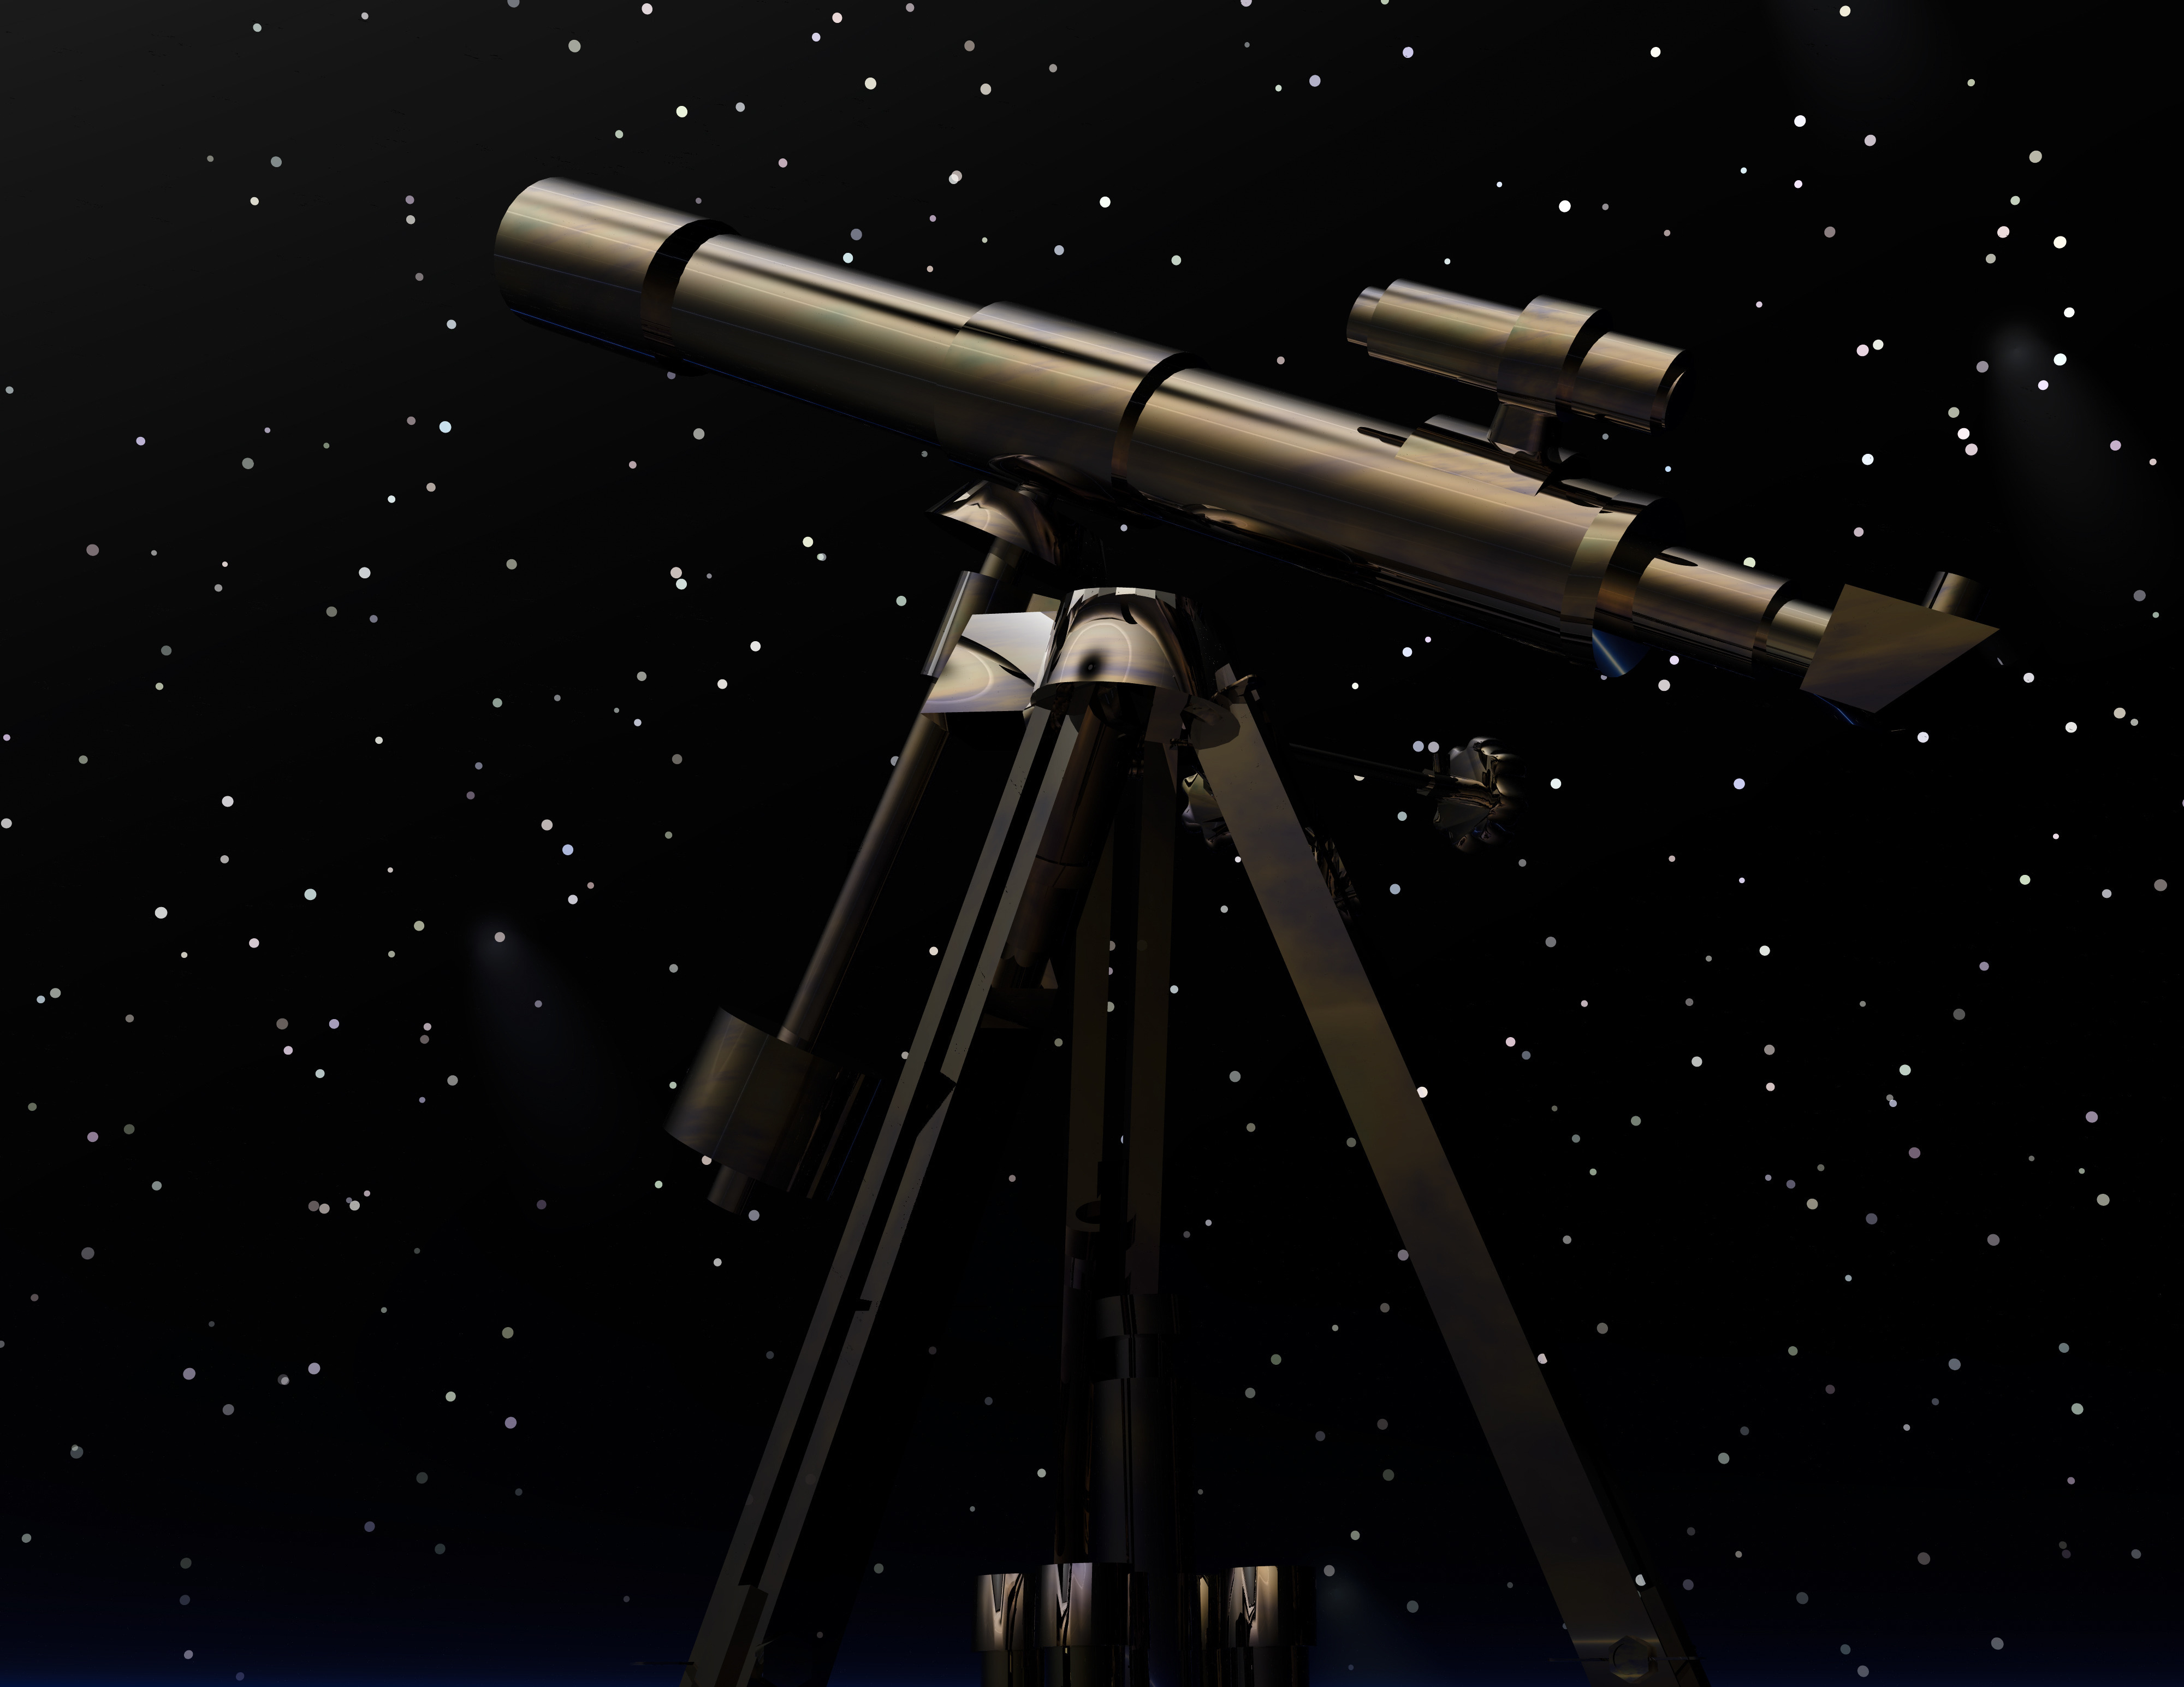 Guest Post: Which End of the Telescope Do You Use?